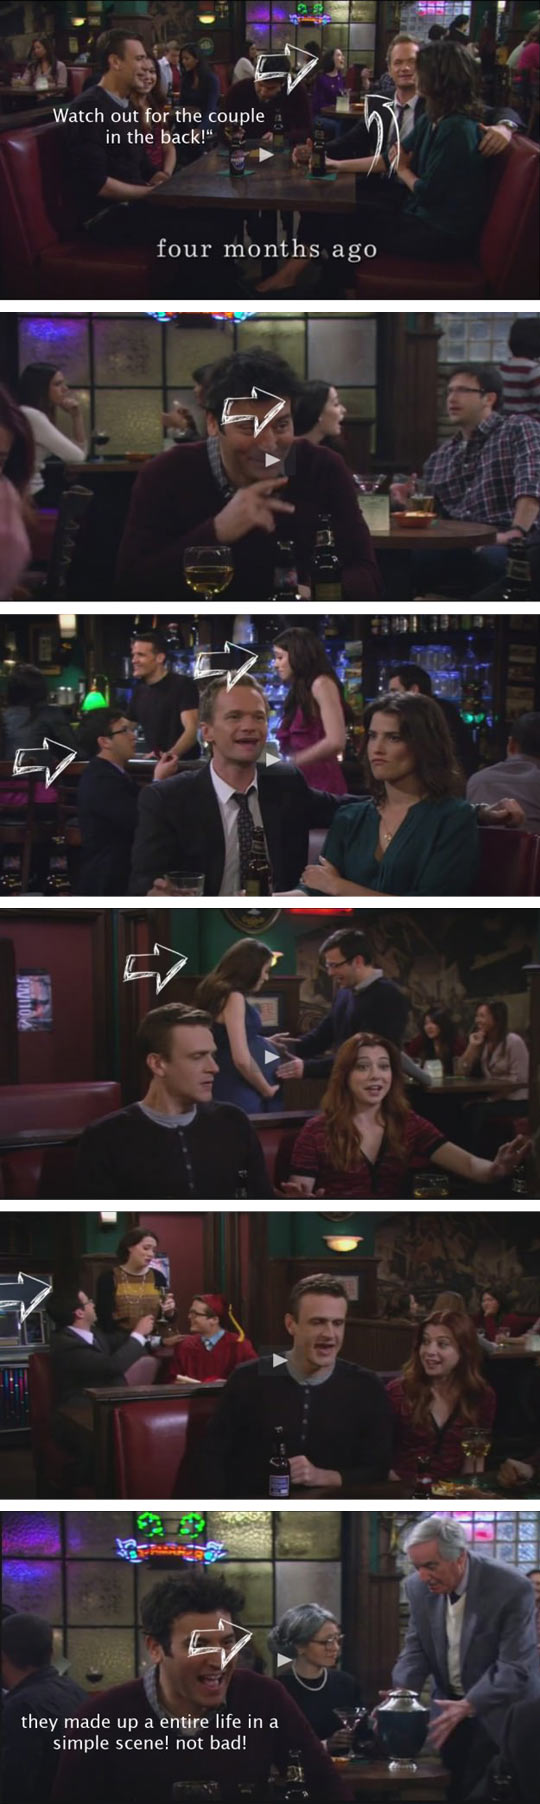 funny-HIMYM-scene-couple-ageing-together